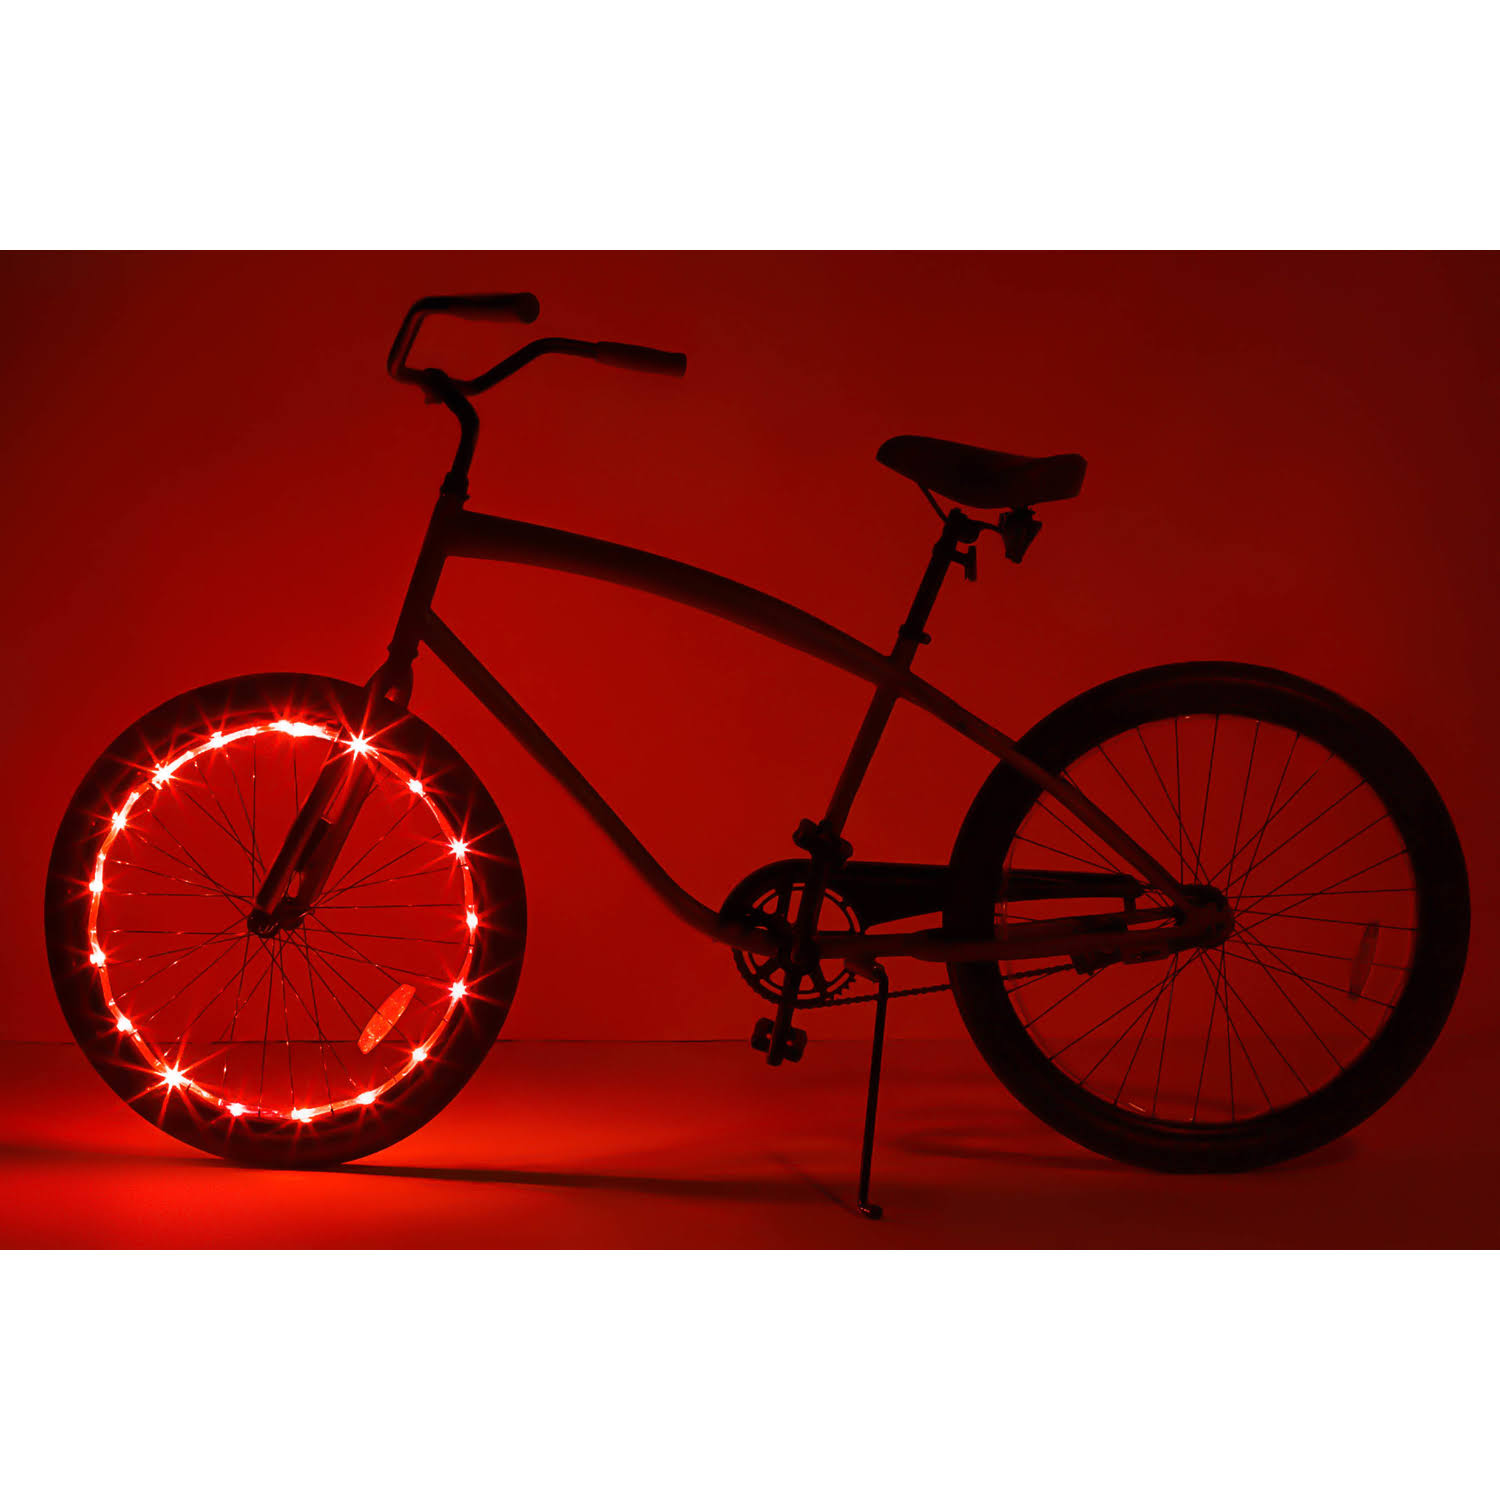 Brightz LTD Wheel LED Bicycle Accessory Light for 1 Red